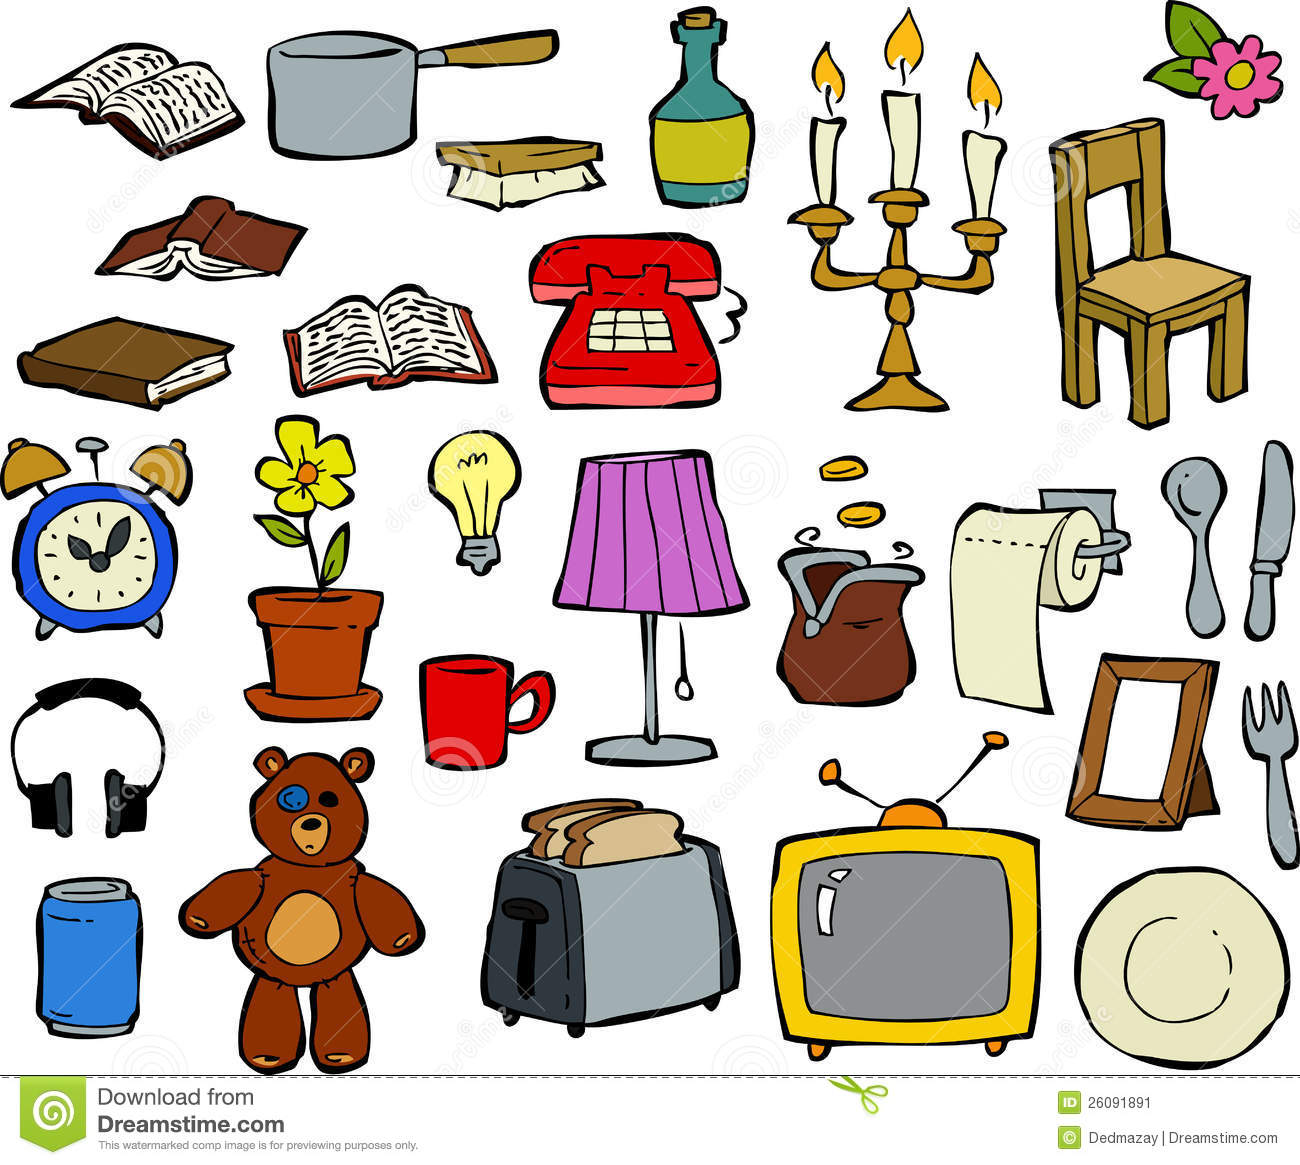 Household Items Doodle Design Elements Vector